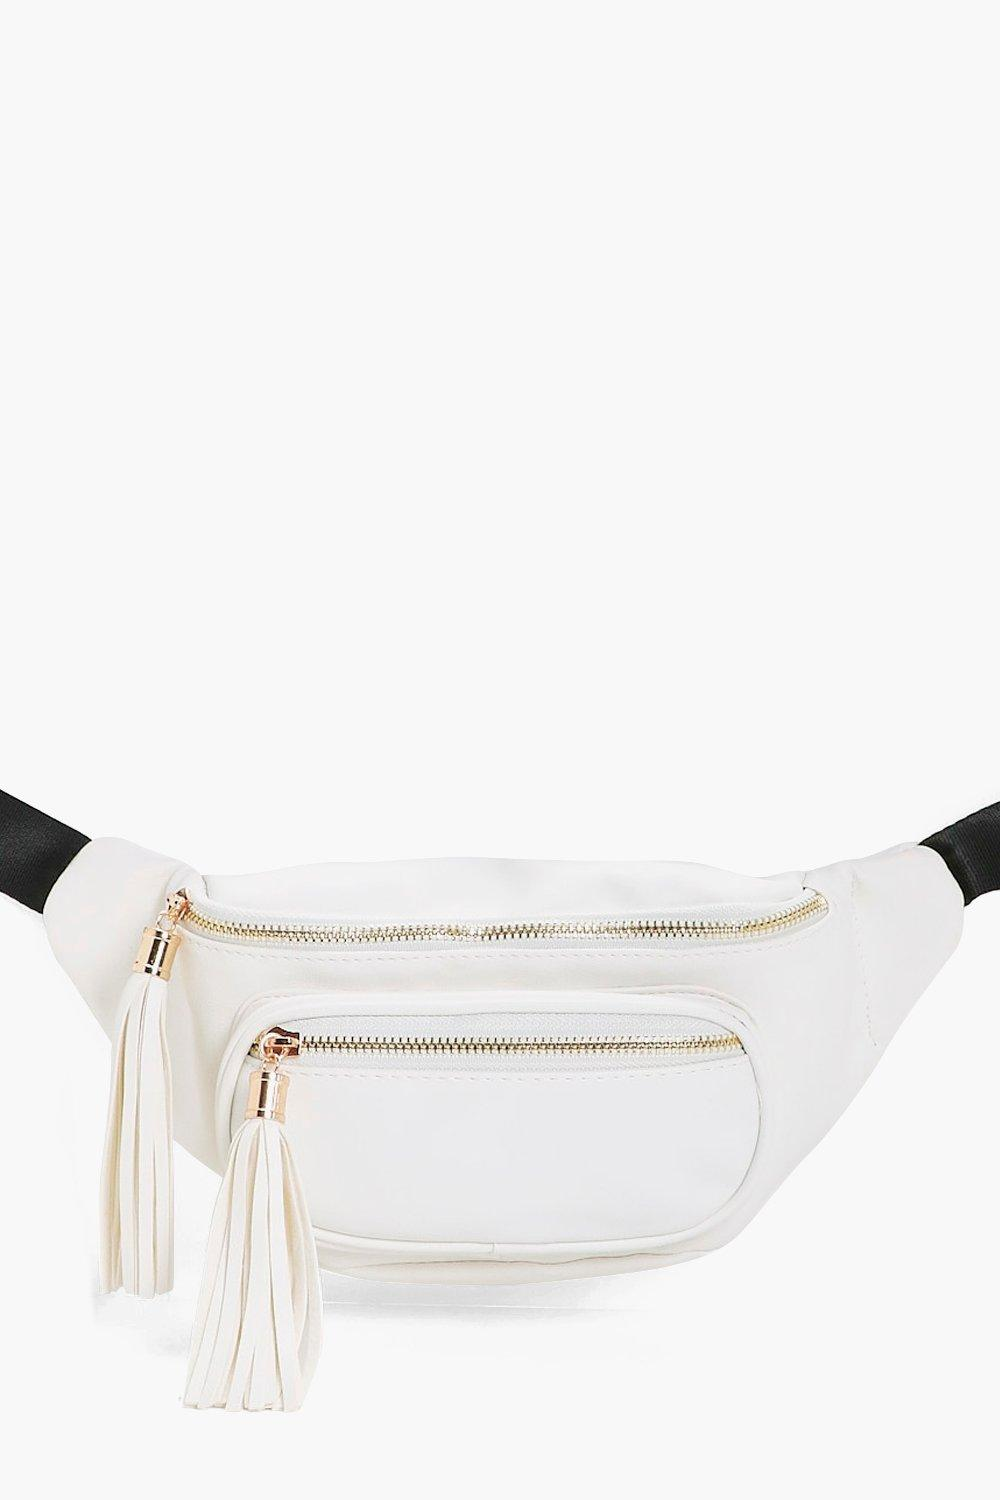 Pocket And Tassel Bumbag - cream - Lily Pocket And